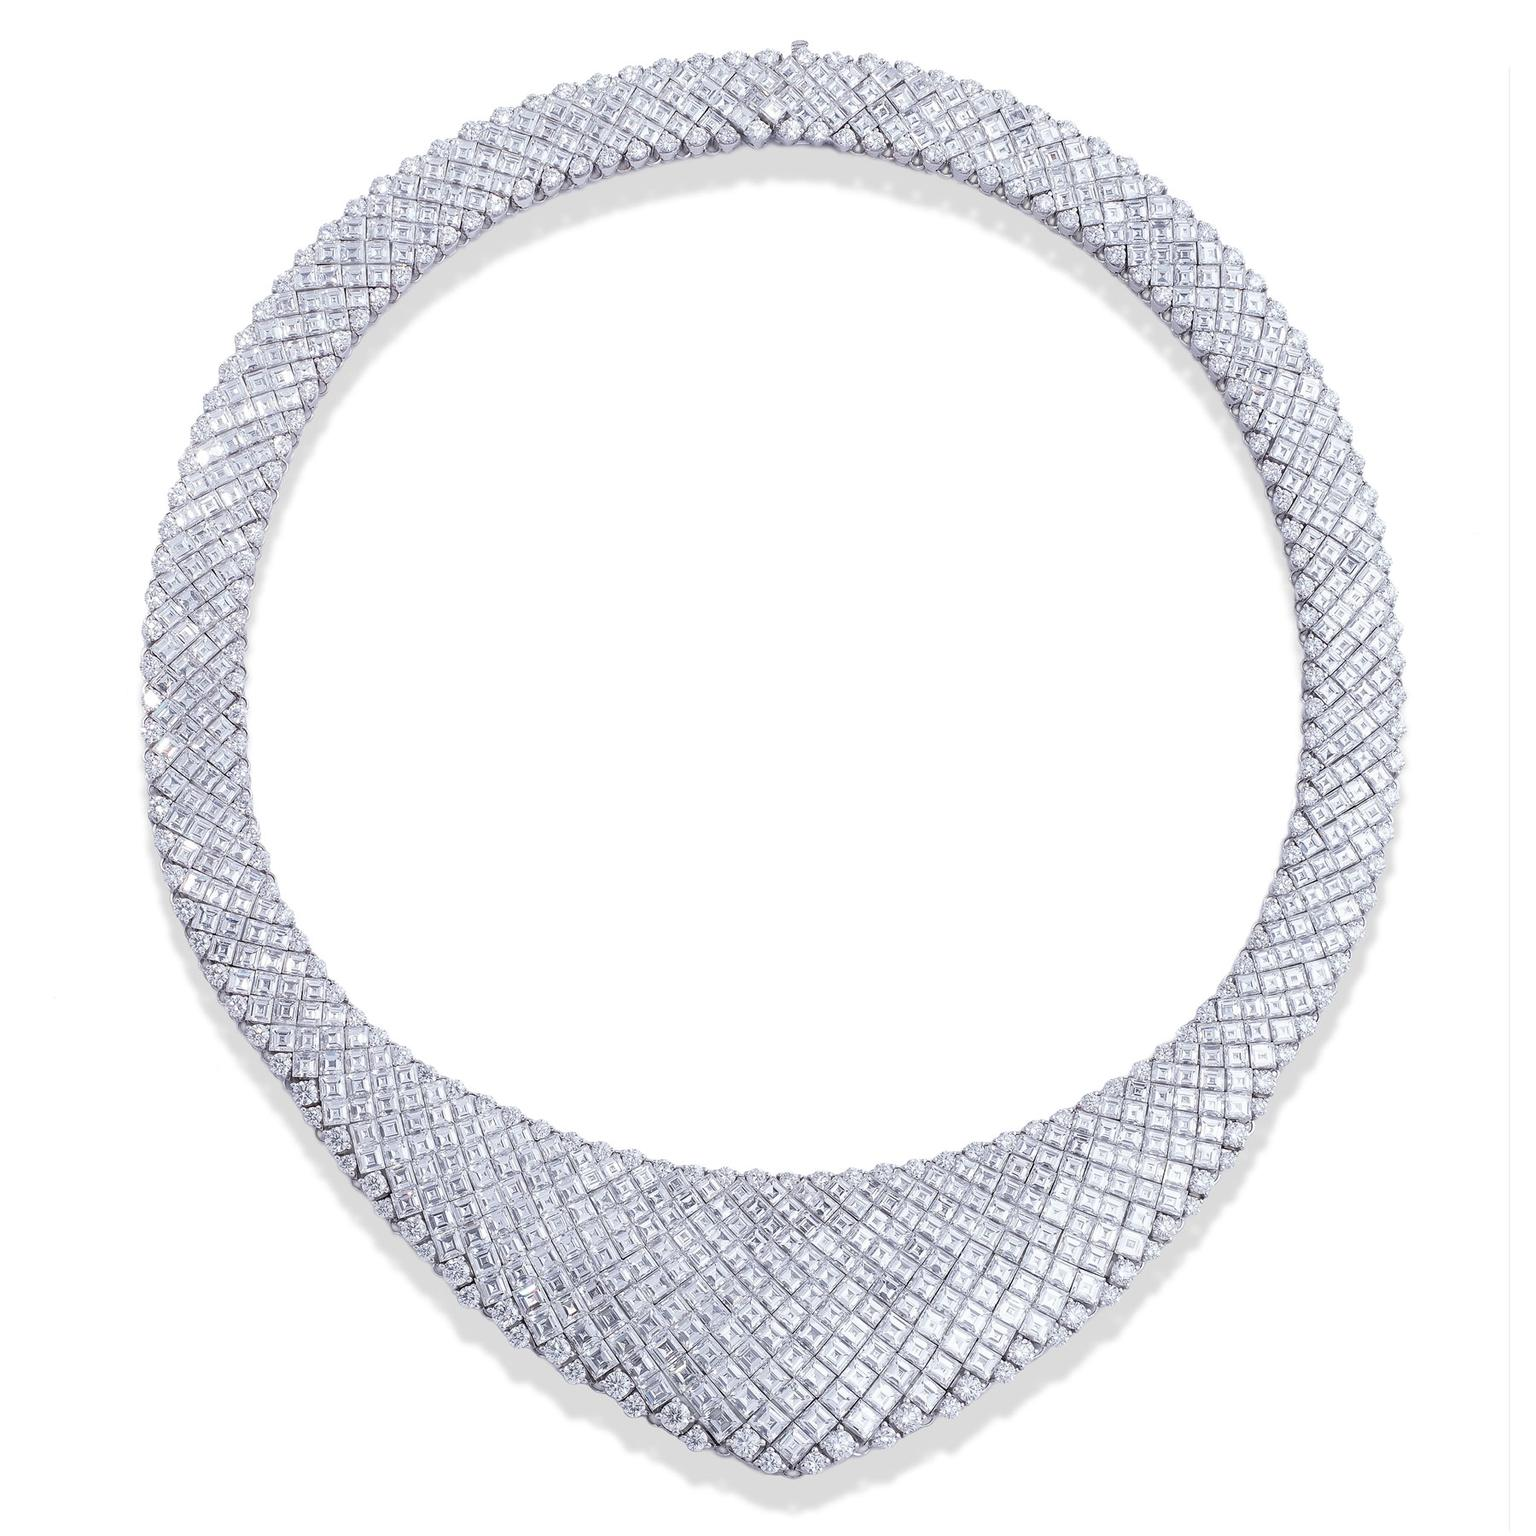 Stenzhorn Ovidio diamond high jewellery necklace